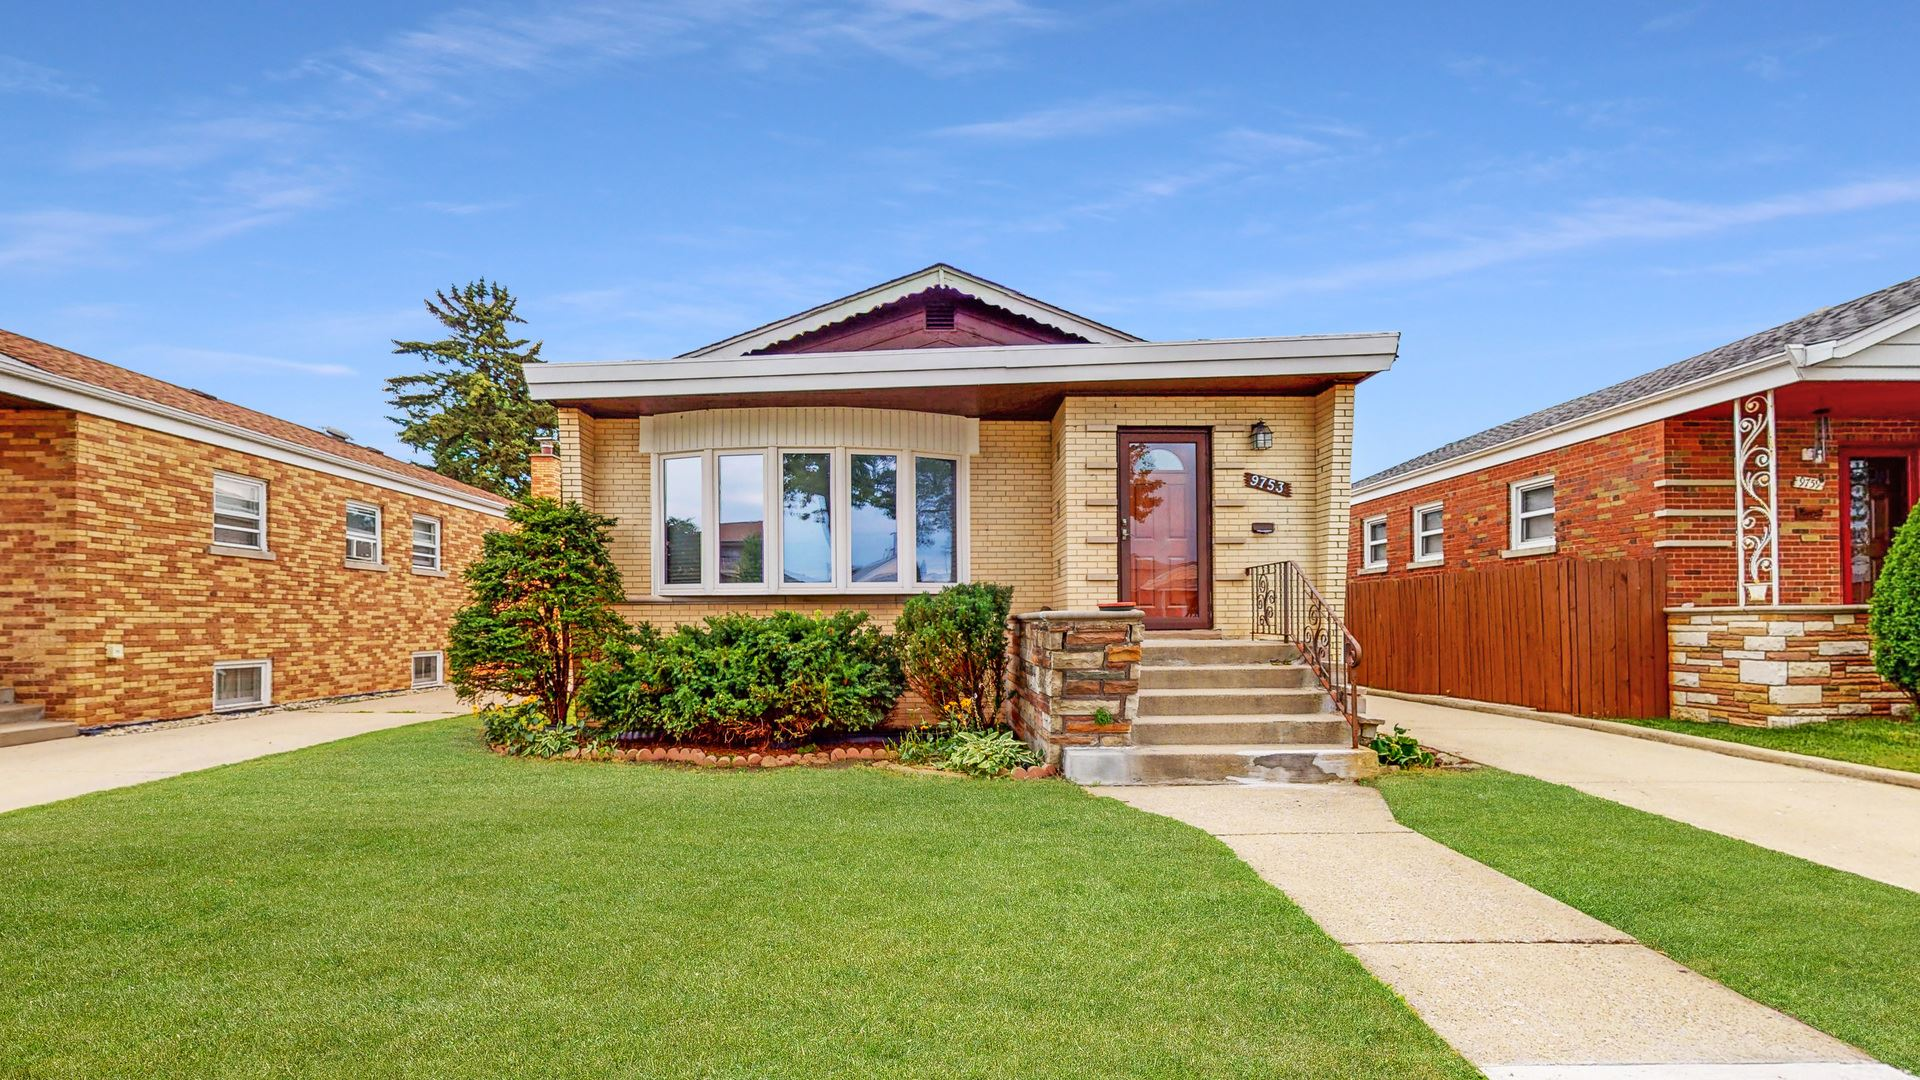 9753 S Troy Avenue, Evergreen Park, IL 60805 - #: 11179633